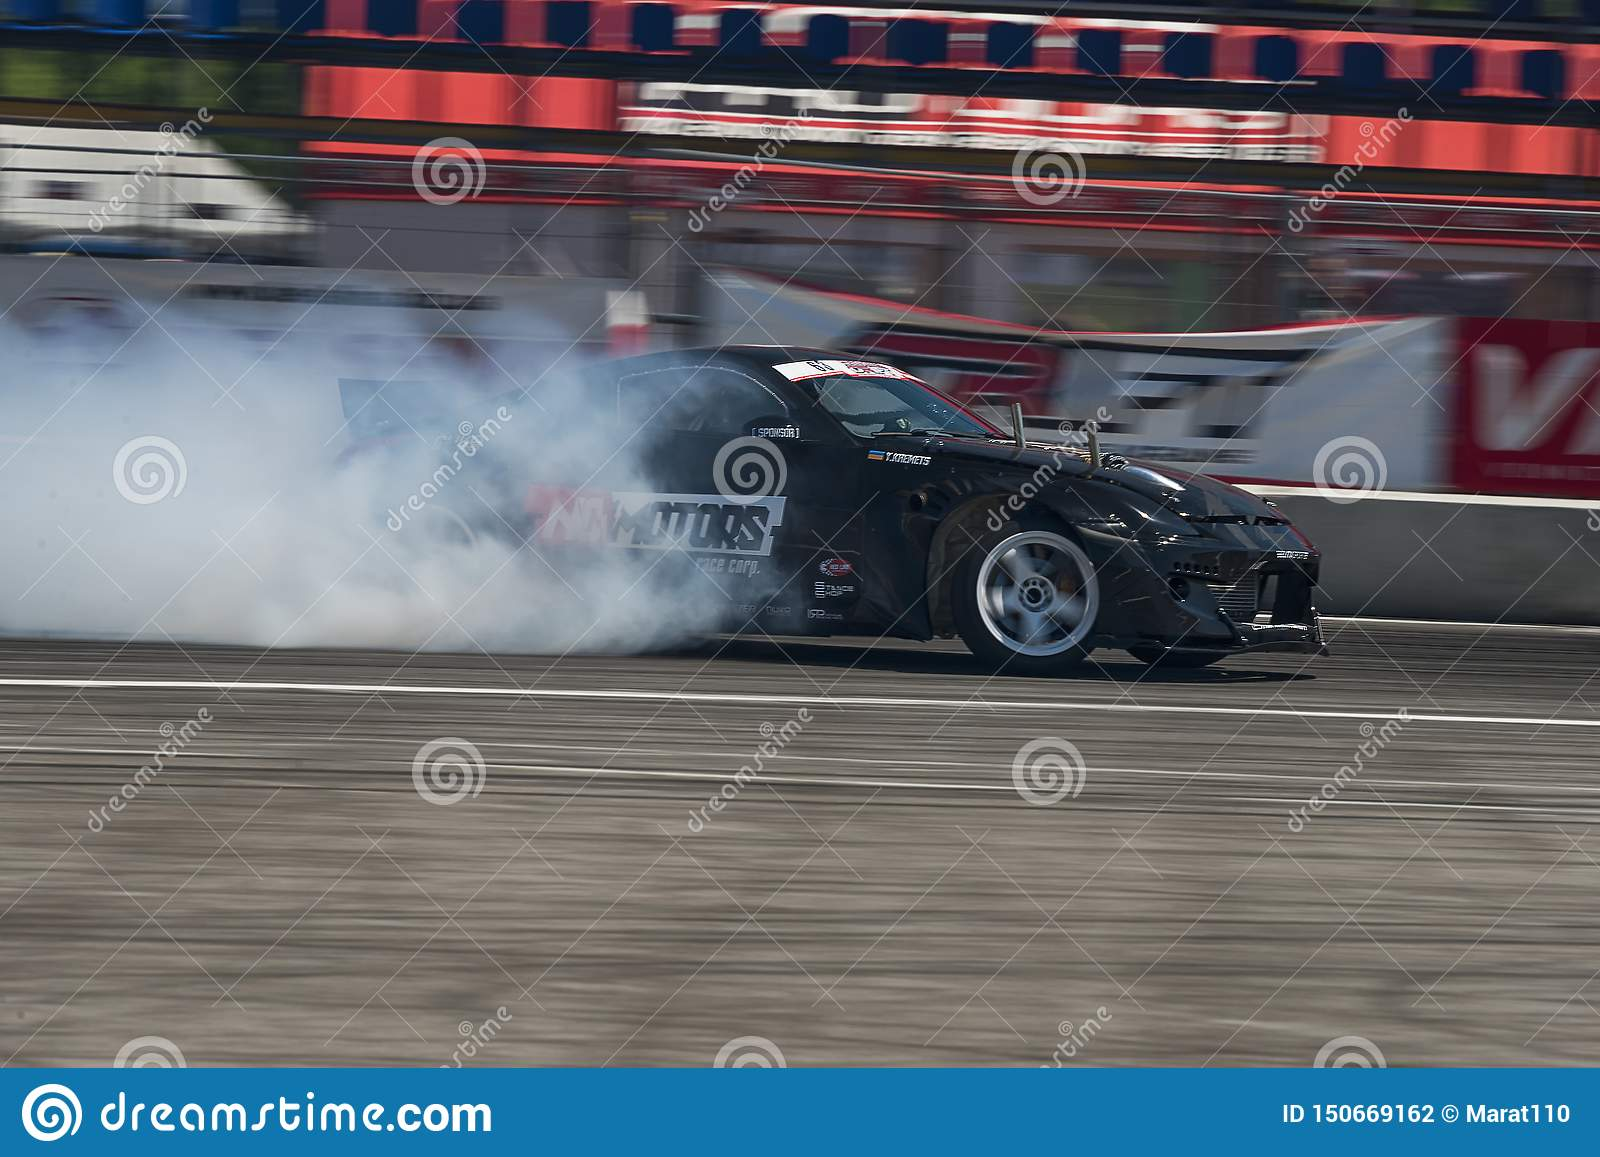 Drift Car Brand Nissan Overcome Turn Track Editorial Photography Image Of Grand Black 150669162